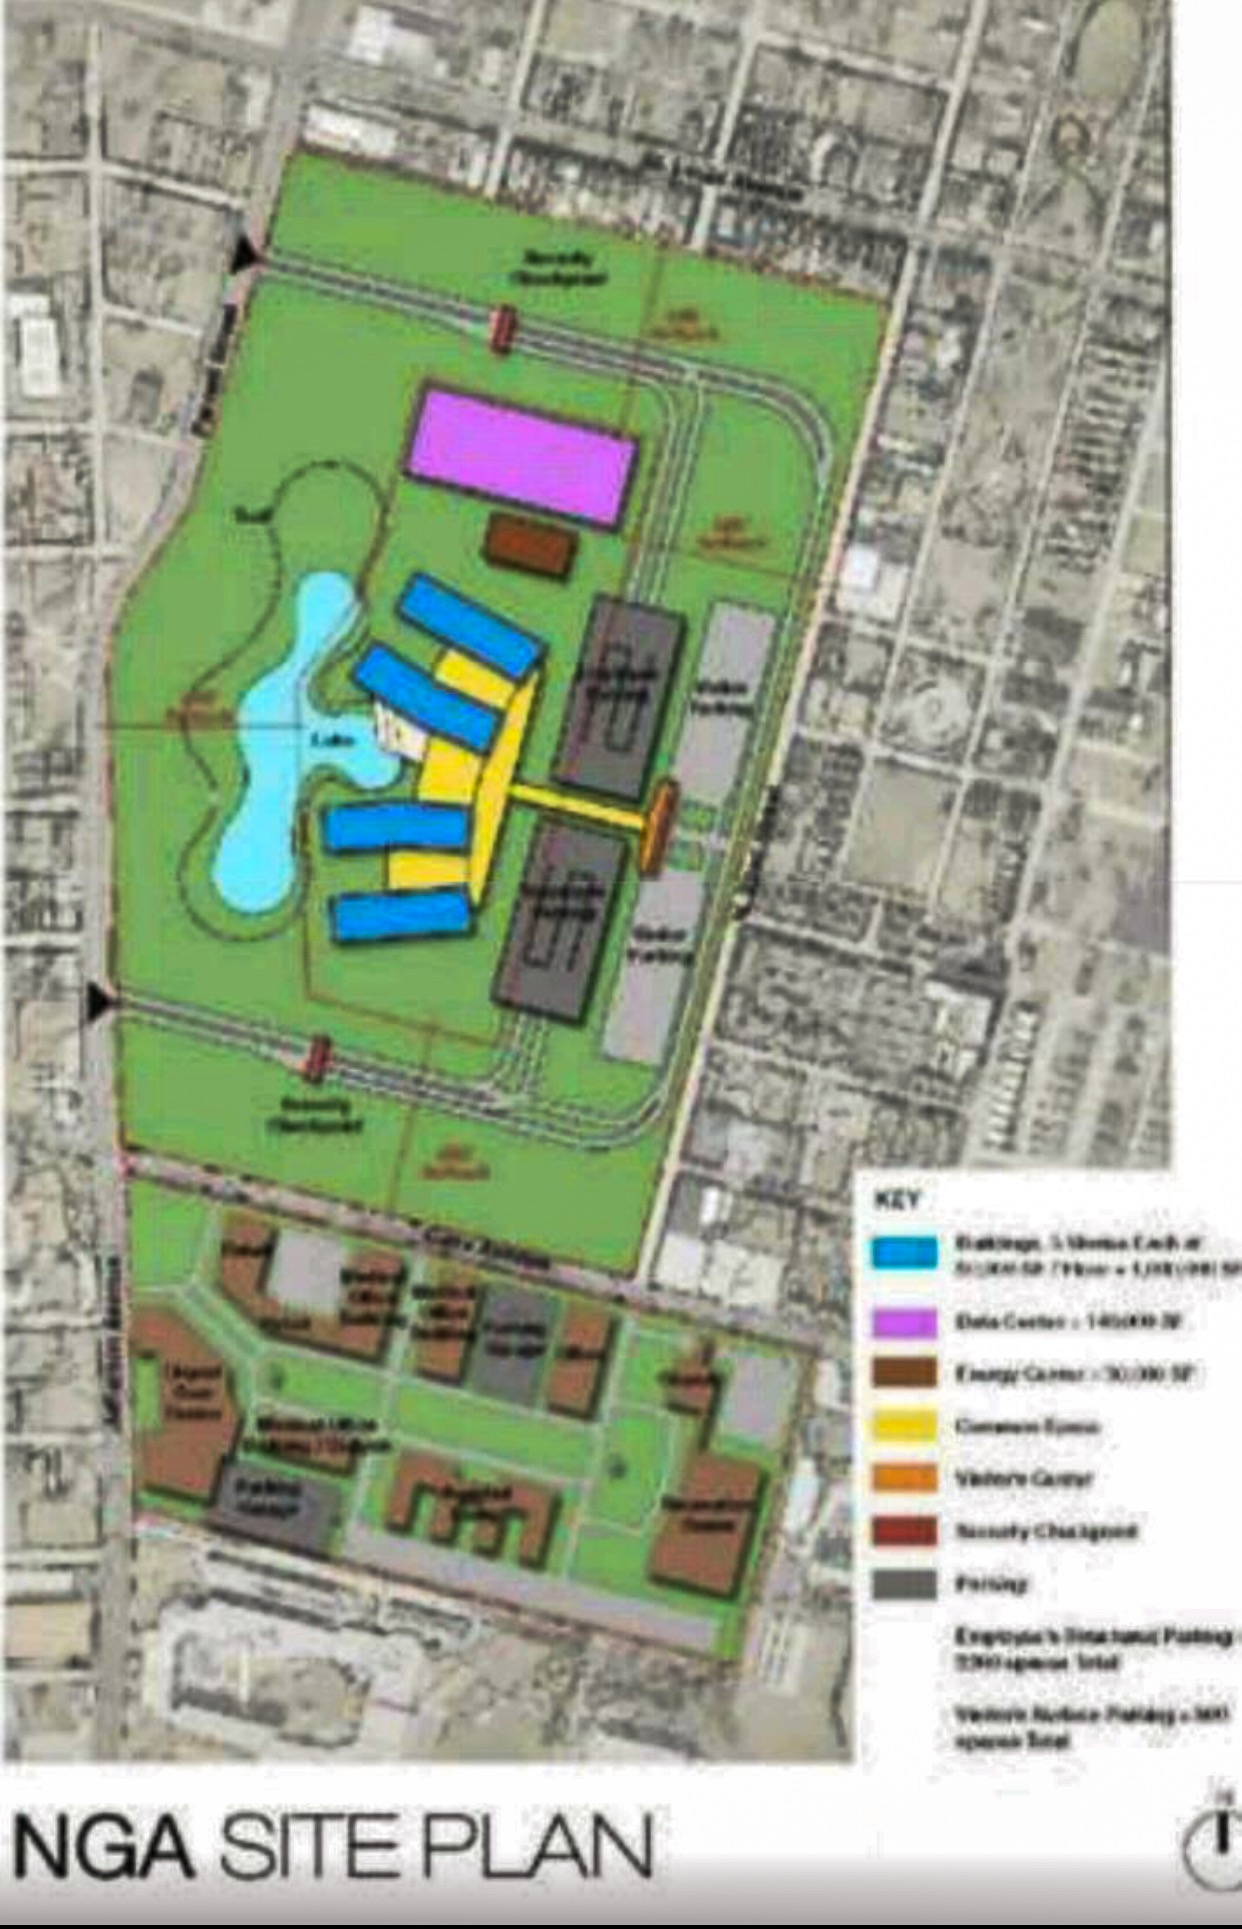 Next NGA West - City of St. Louis proposed site plan